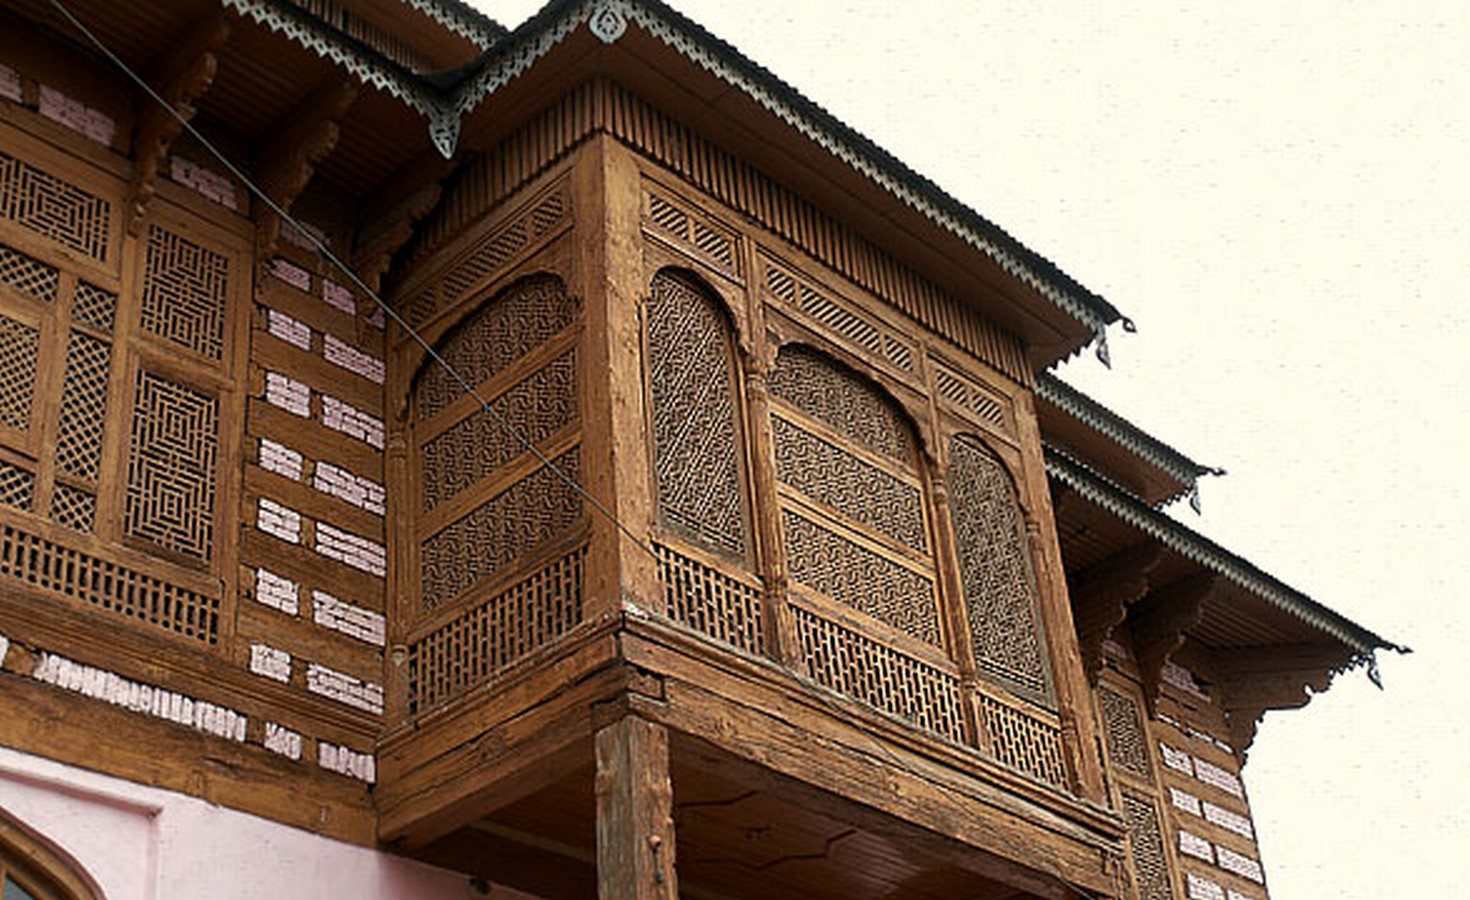 Architecture of Kashmir- Beauty amidst chaos - Sheet4